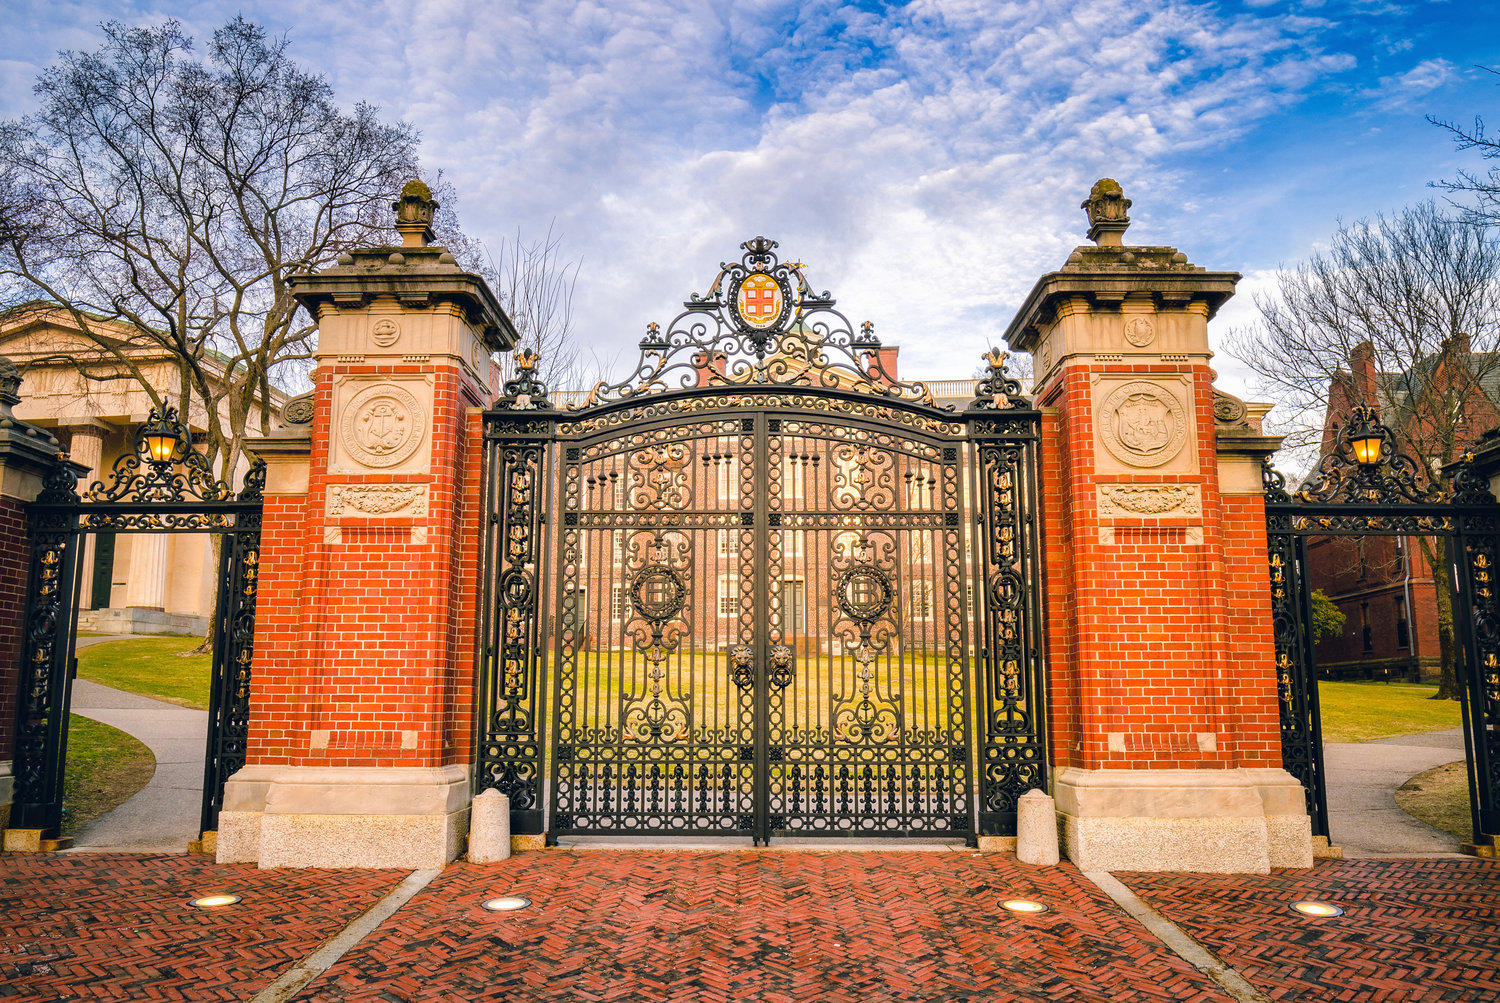 The gates to Brown open just twice a year: Once for Convocation (when first-year students are welcomed into the University community) and once for Commencement (for graduating seniors).